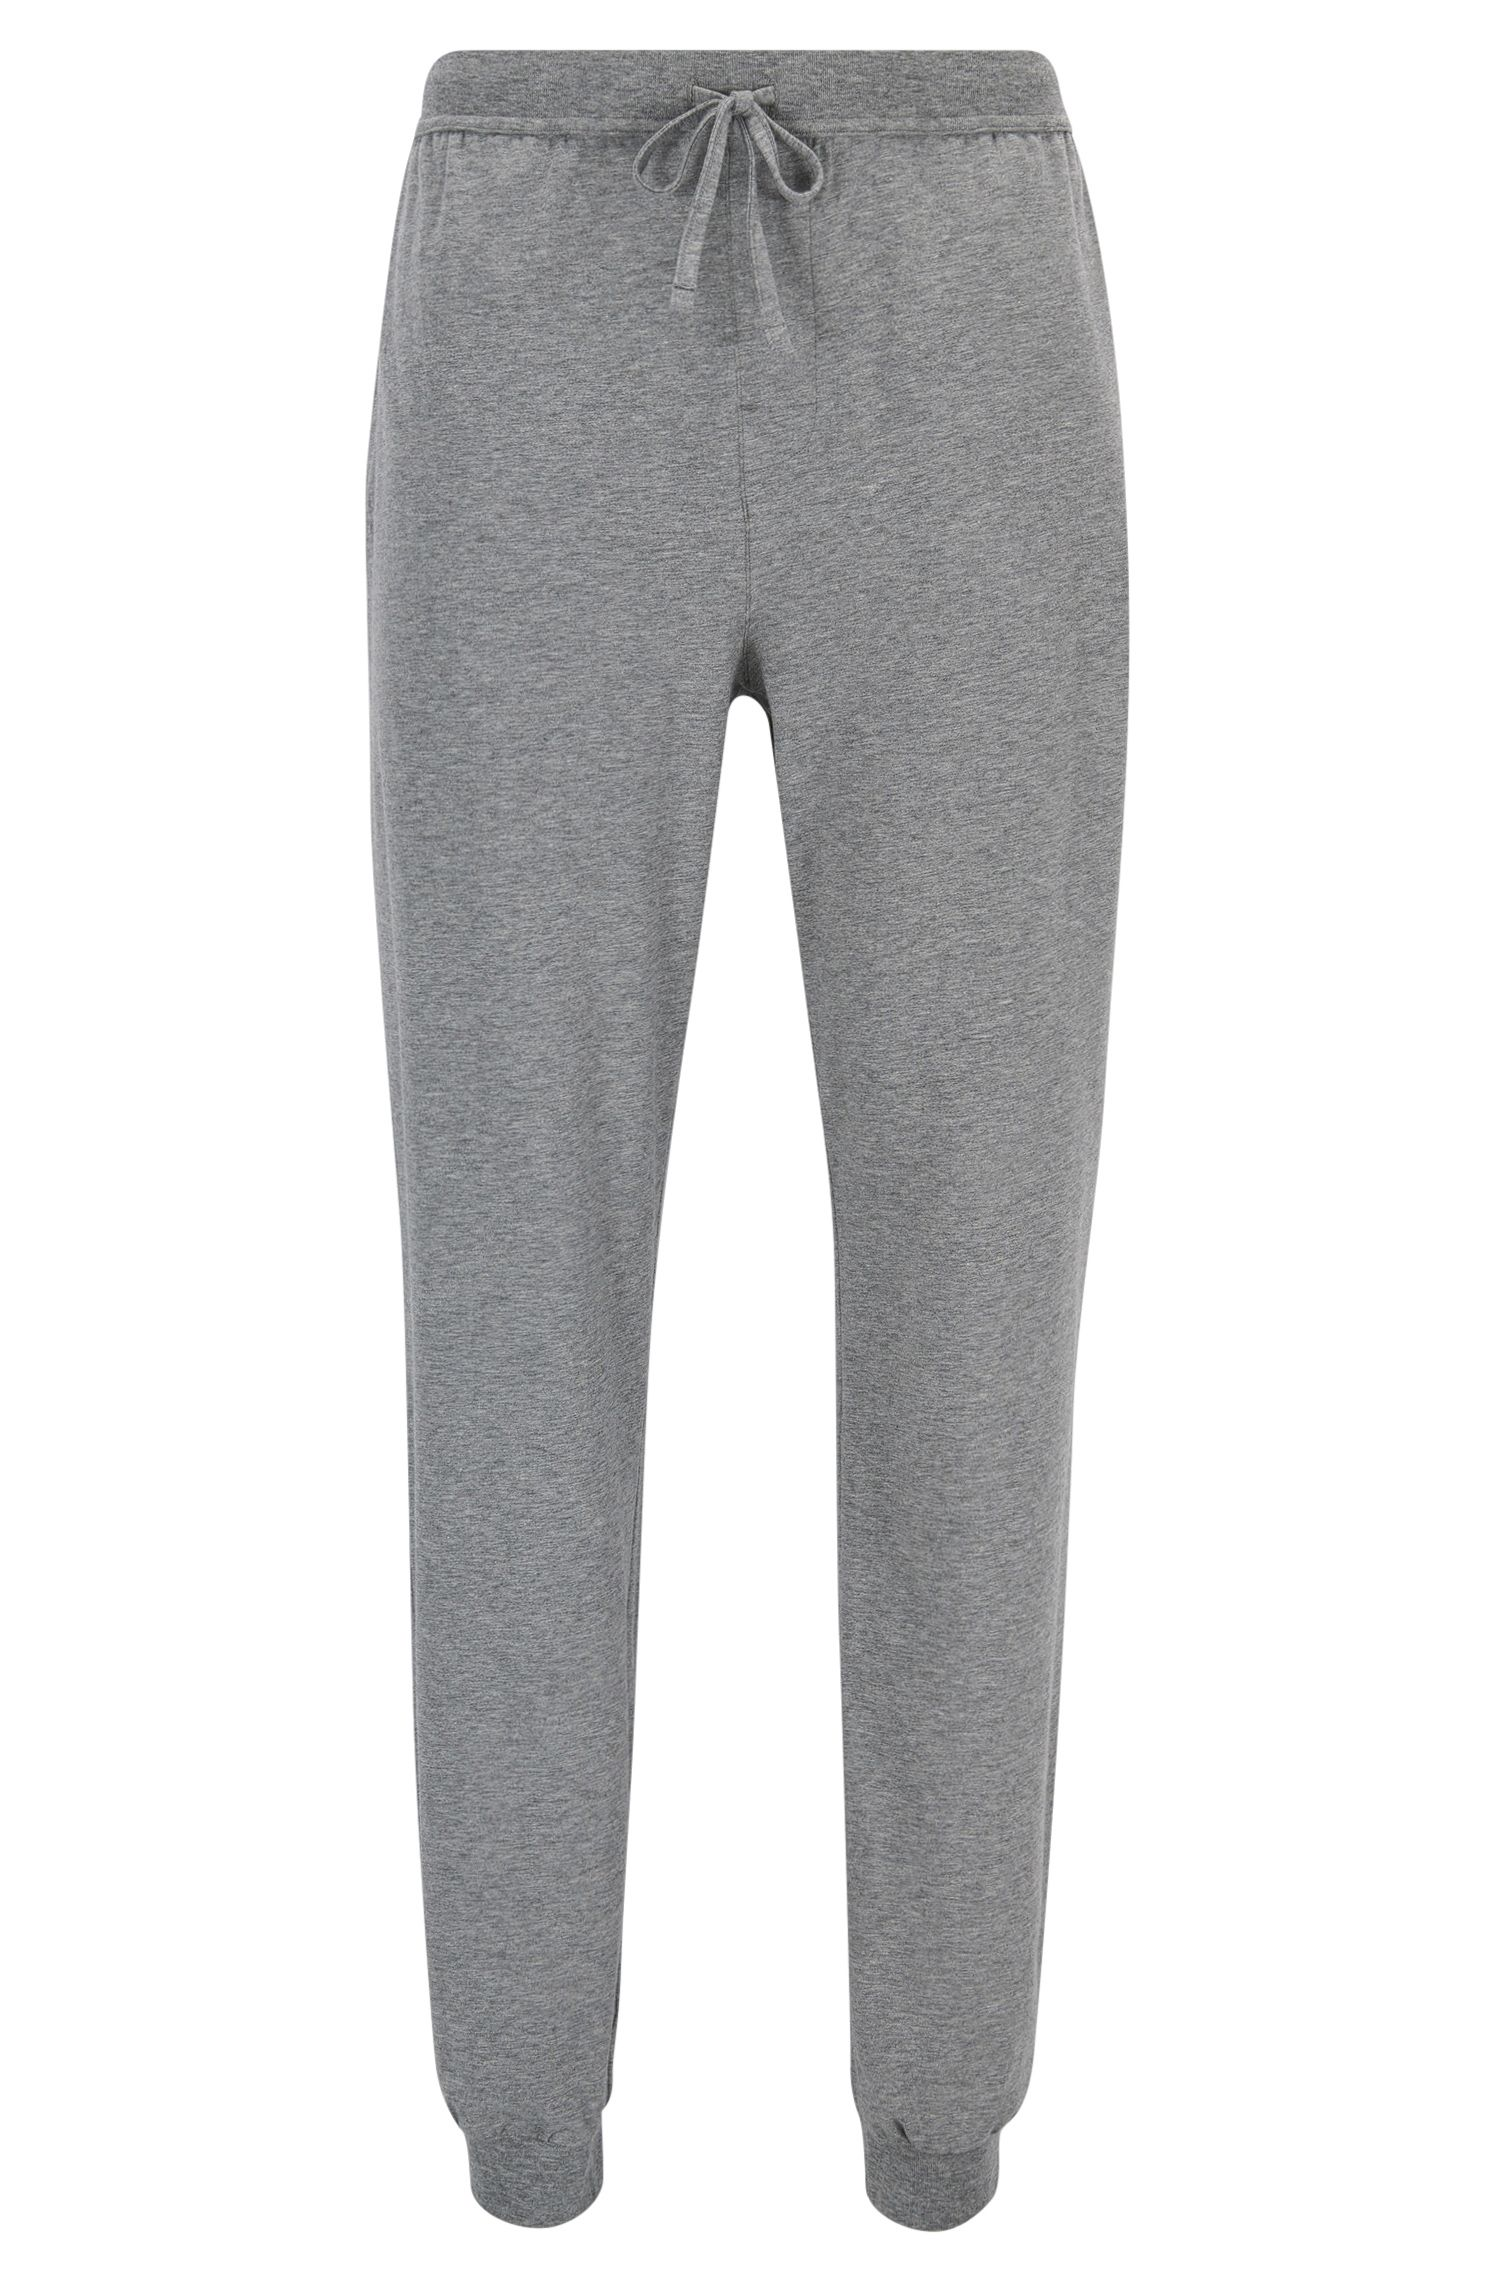 Cuffed loungewear bottoms in stretch cotton